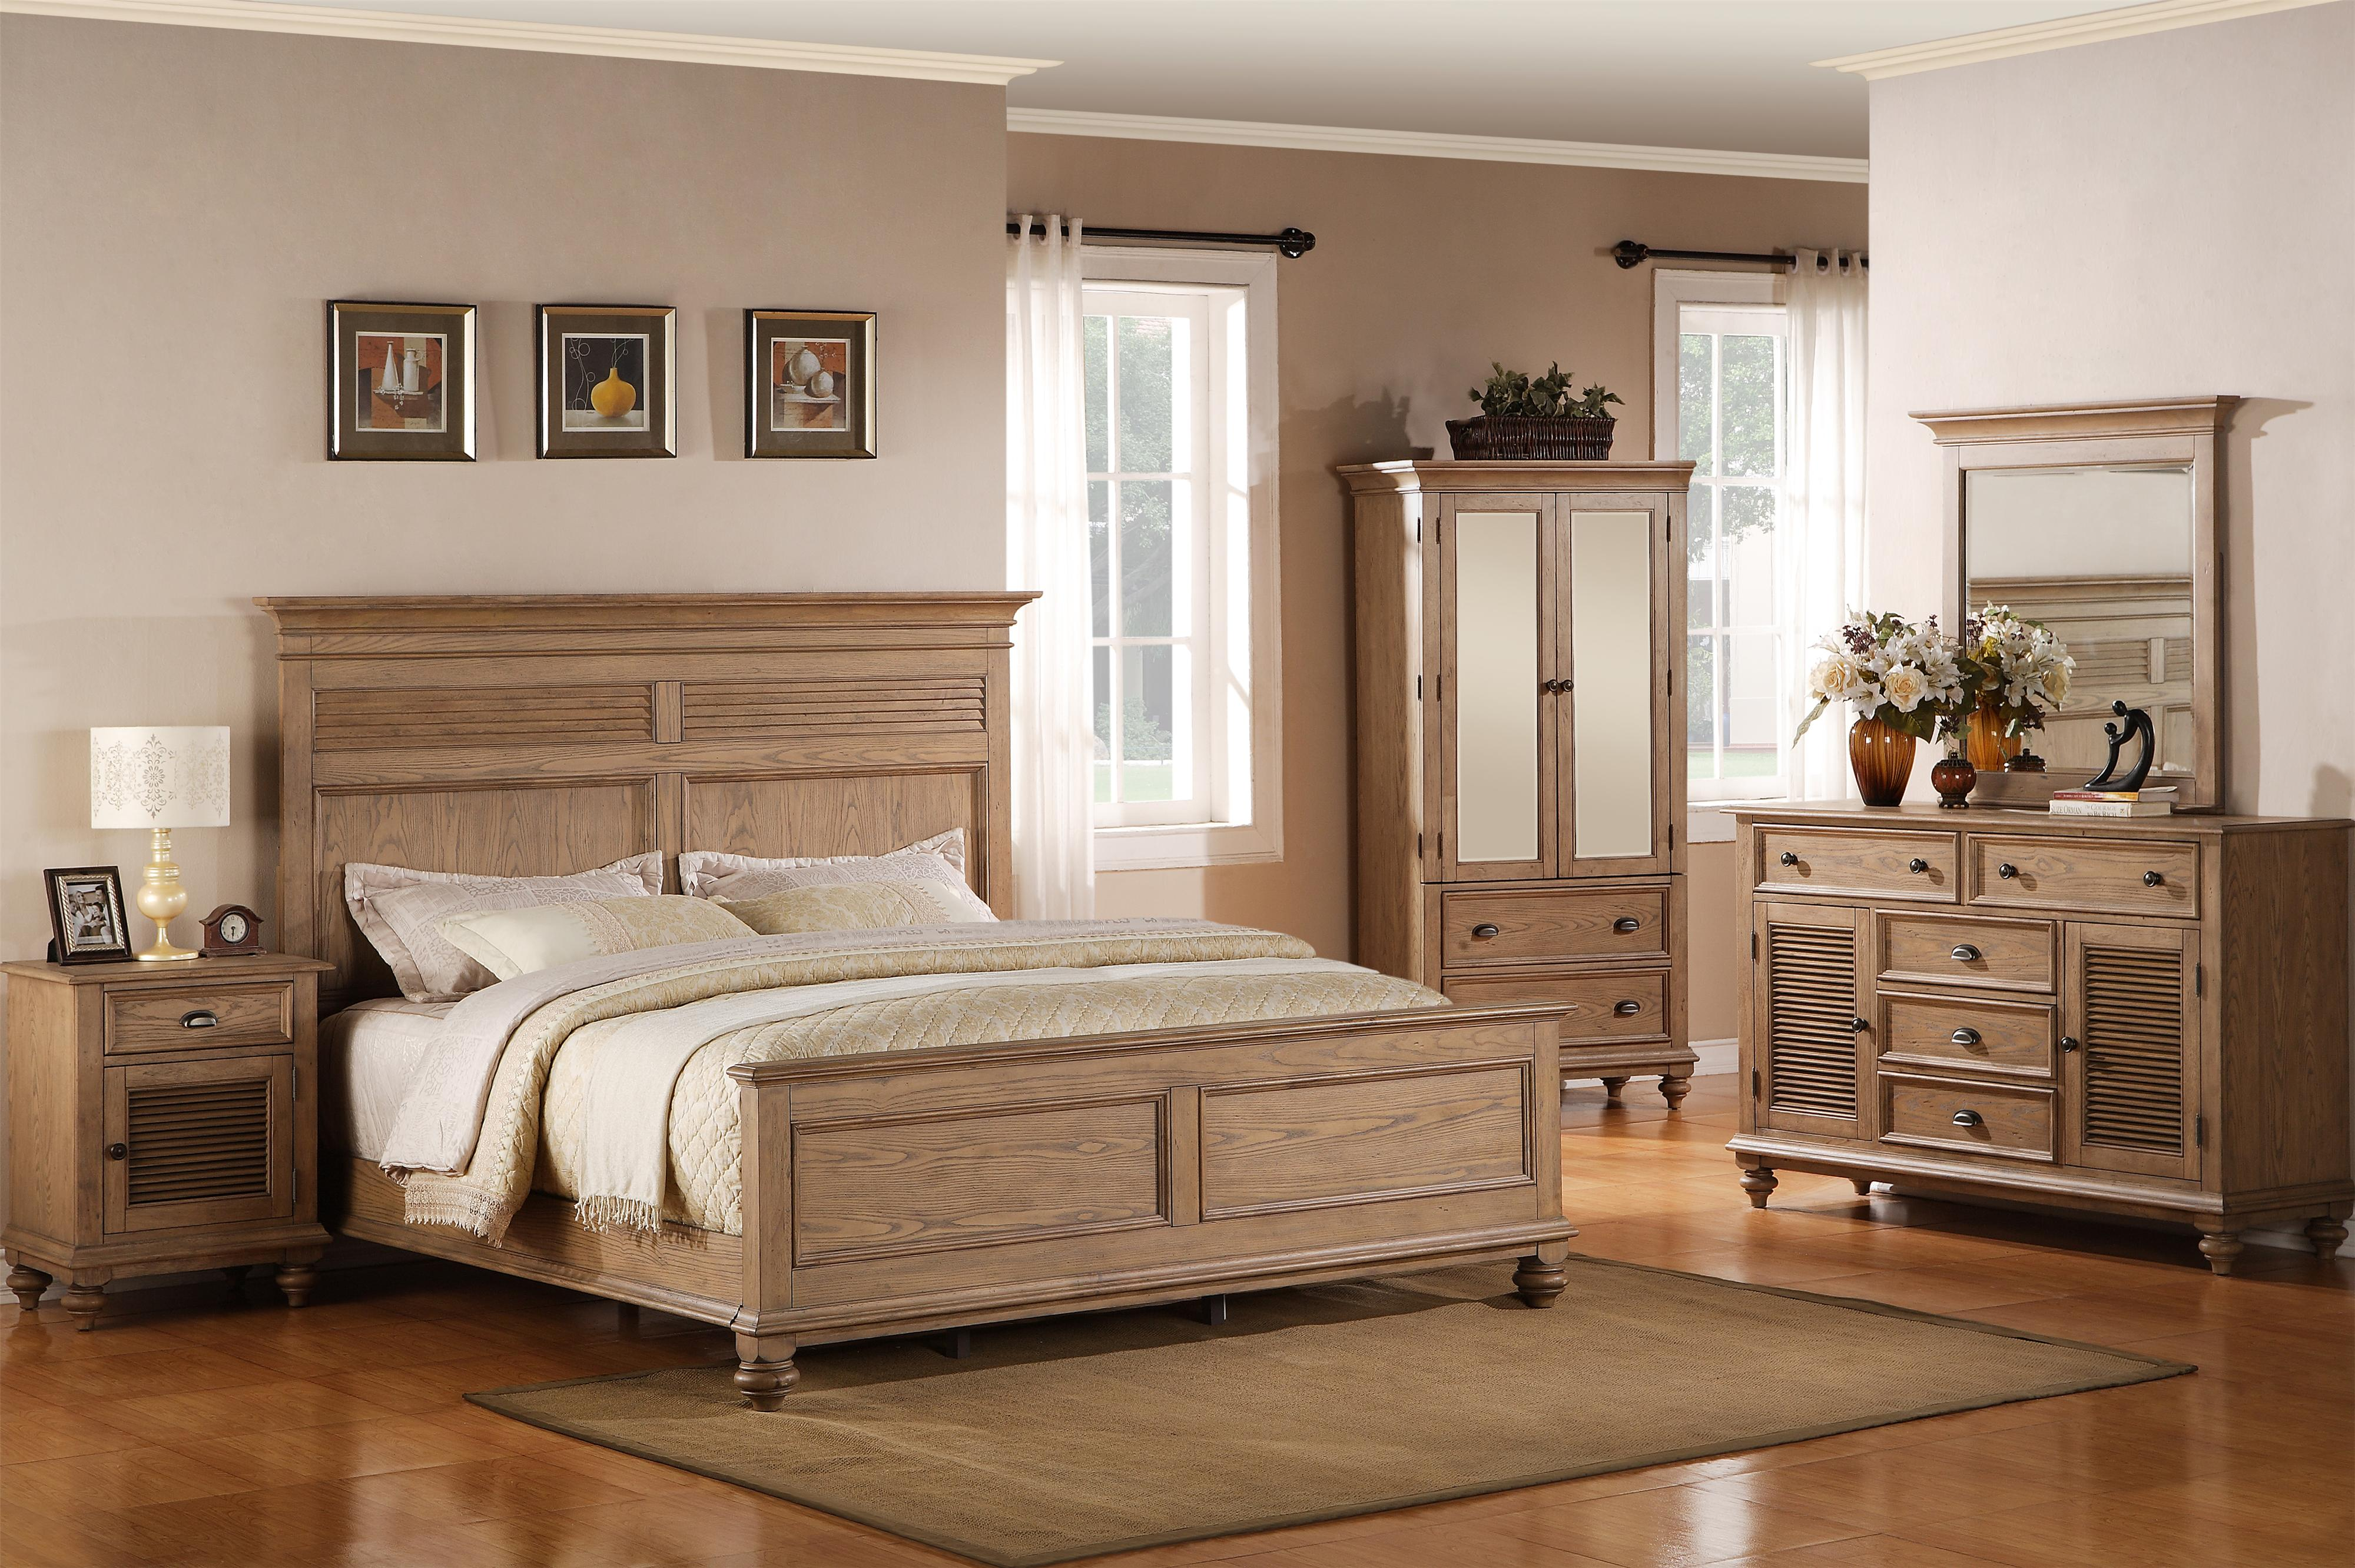 Riverside Furniture Coventry Full/Queen Bedroom Group - Item Number: 32400 F Q Bedroom Group 5